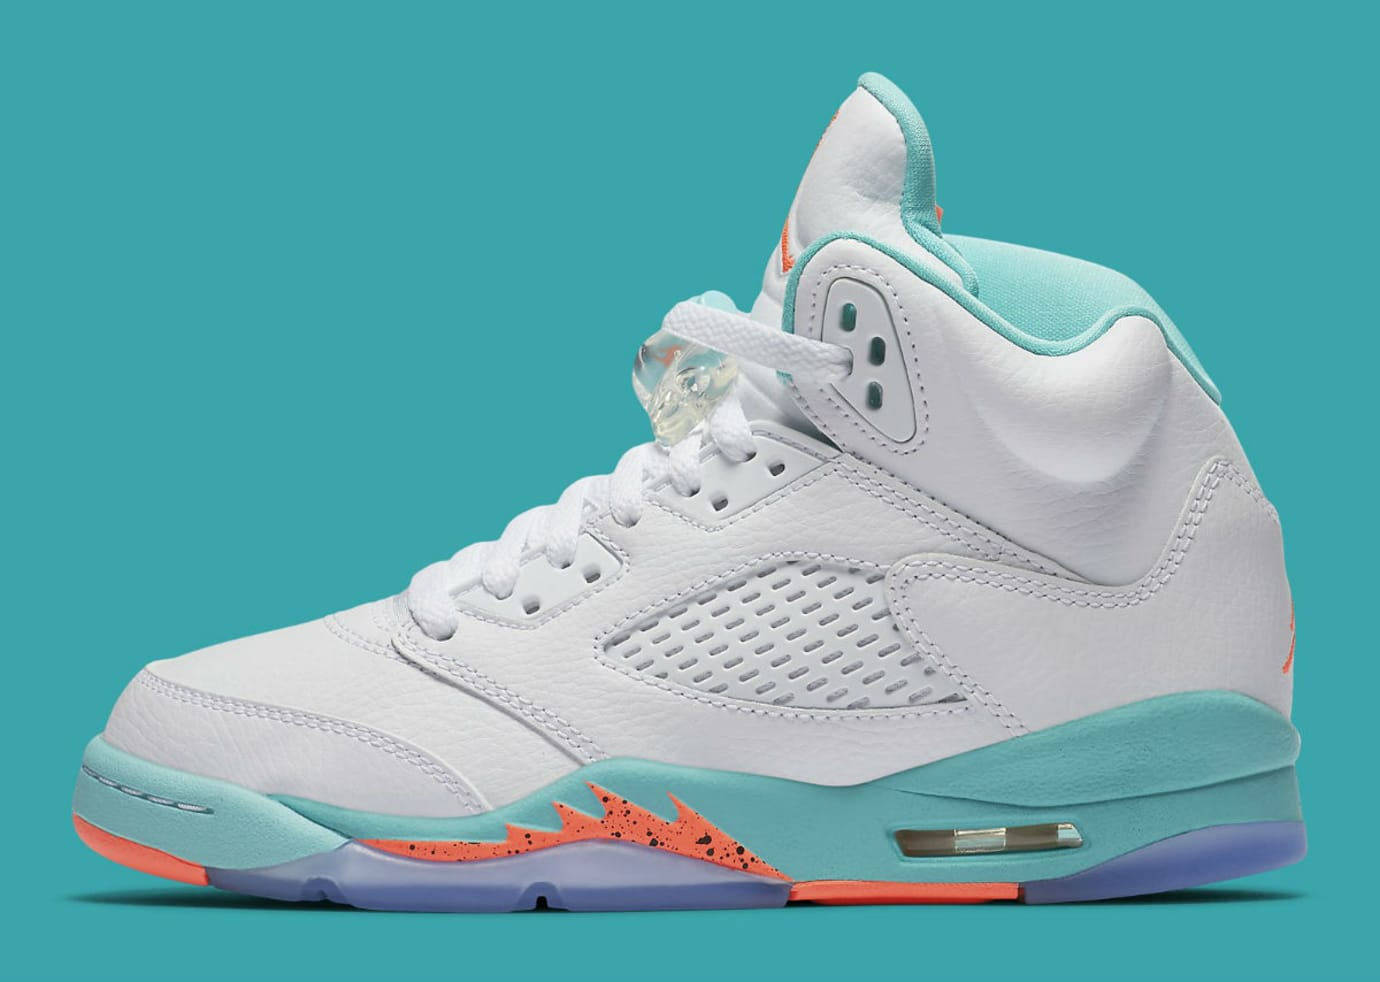 new arrival f3e6f 1ec35 Air Jordan 5 V GS White Crimson Pulse Light Aqua Release Date 440892-100  Profile